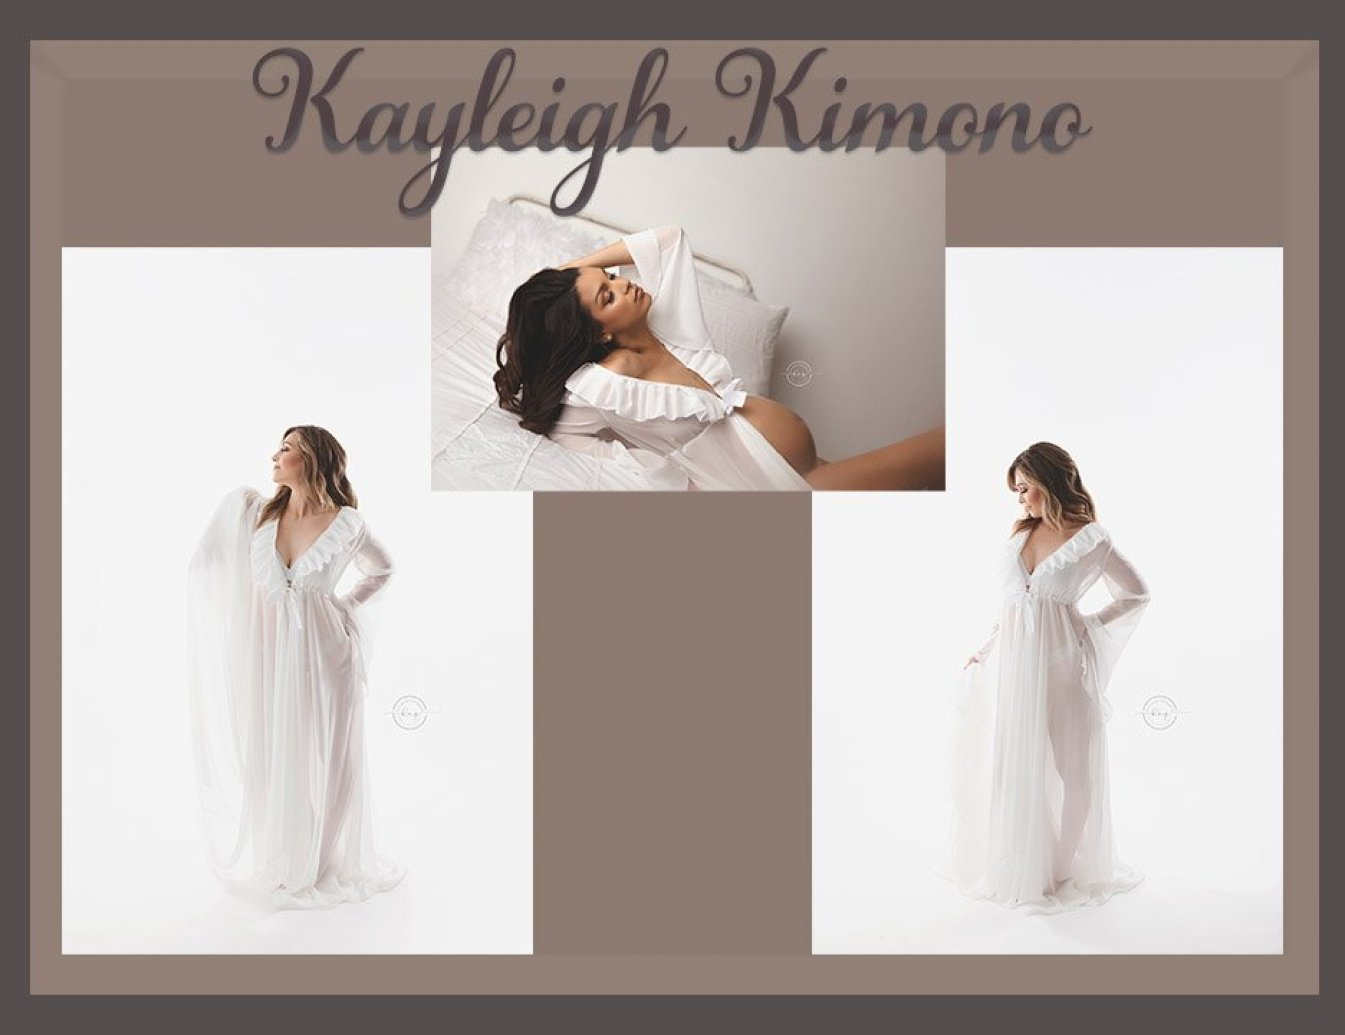 kimono, maternity gown photography, maternity dress photoshoot, baby shower dress, robe, maternity kimono